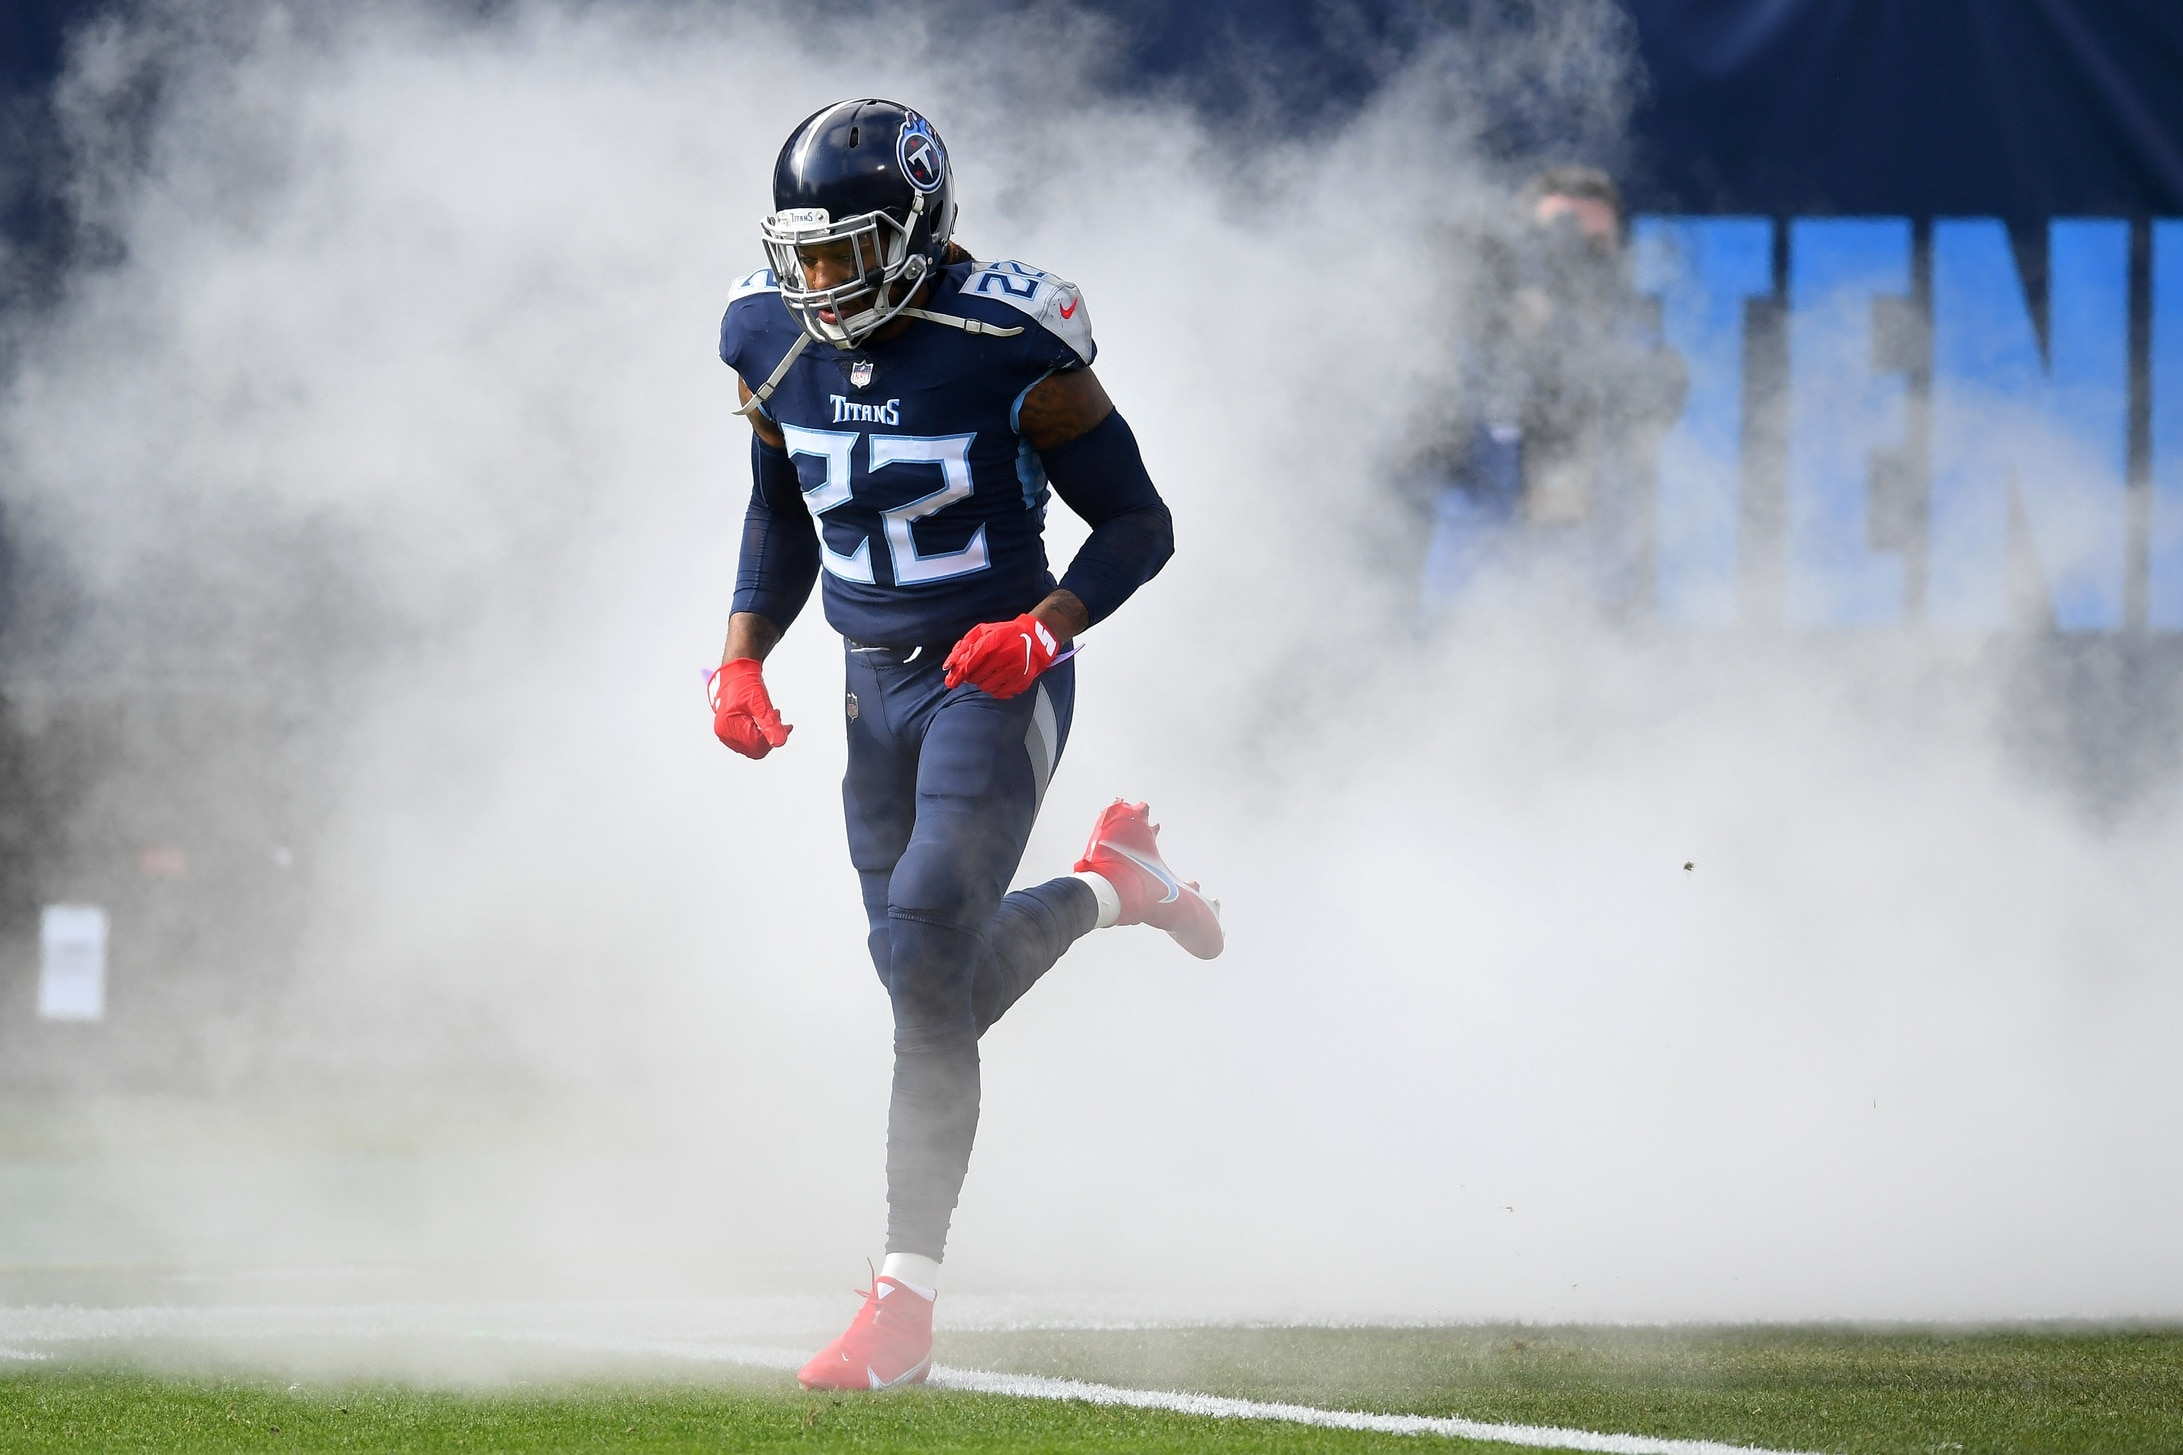 NFL top 100 players: Derrick Henry